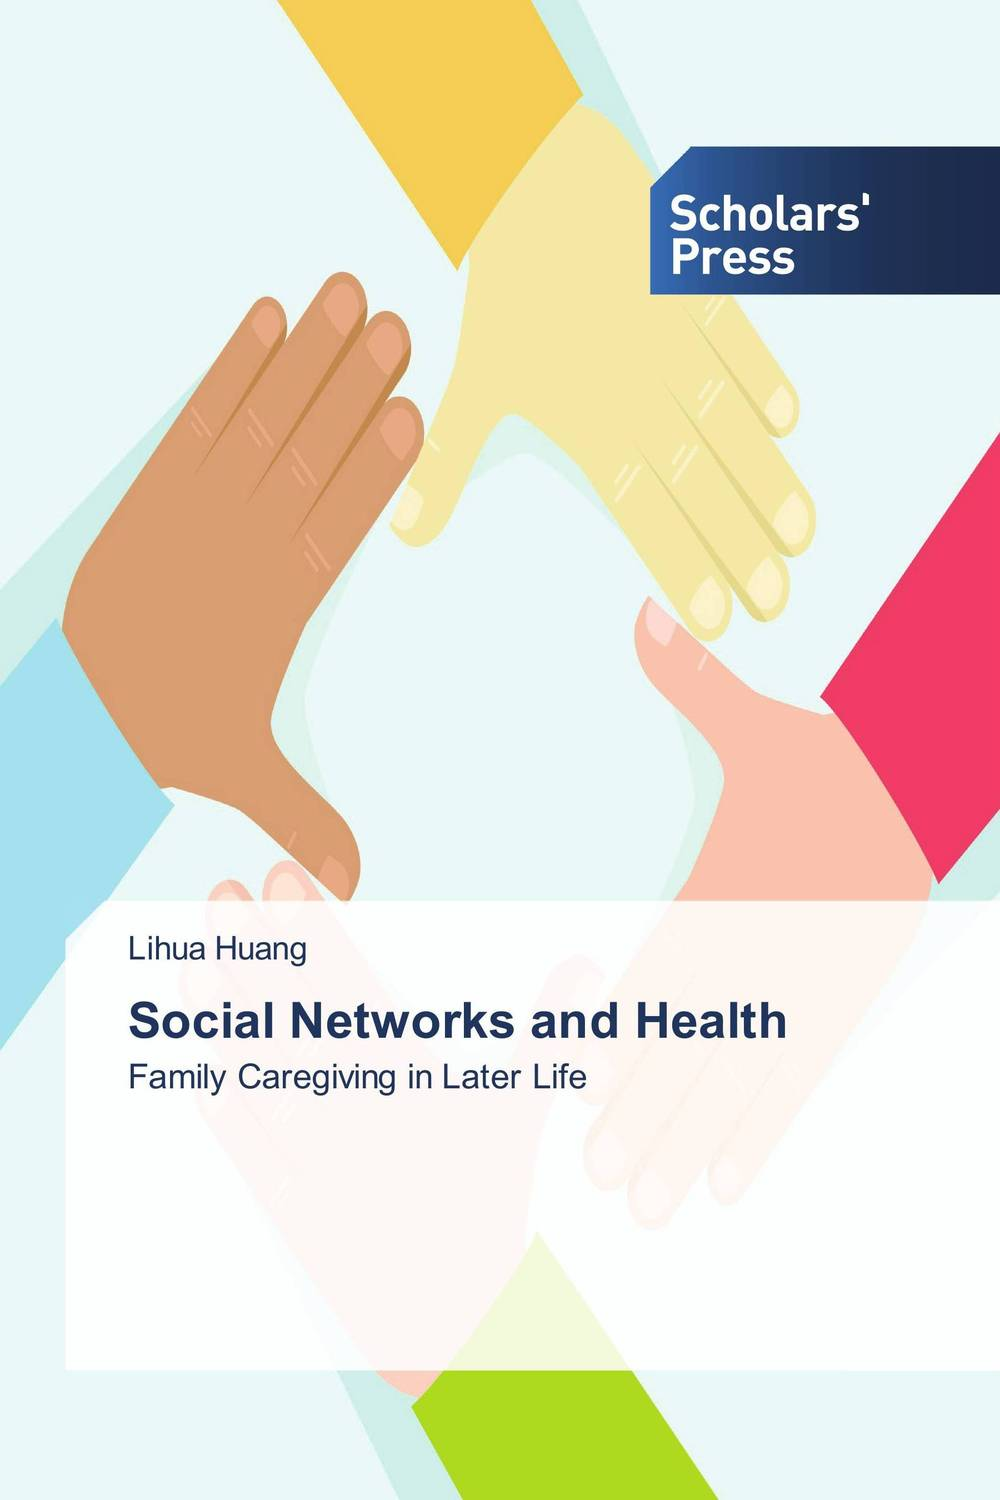 Social Networks and Health family caregiving in the new normal